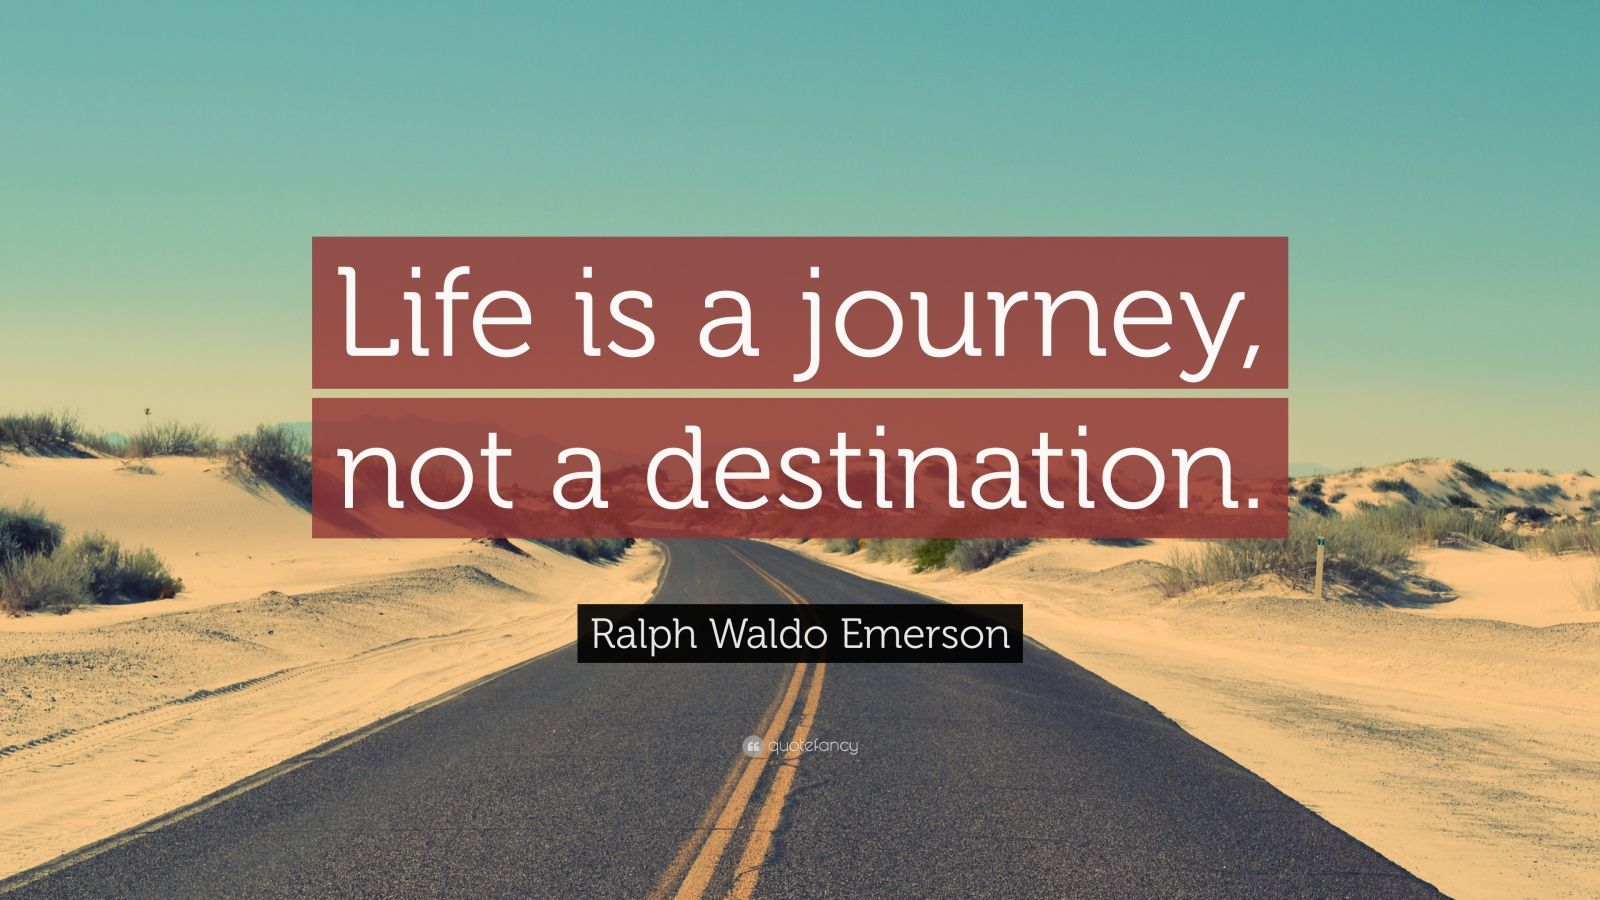 Denzel Washington Quote Wallpaper Ralph Waldo Emerson Quote Life Is A Journey Not A